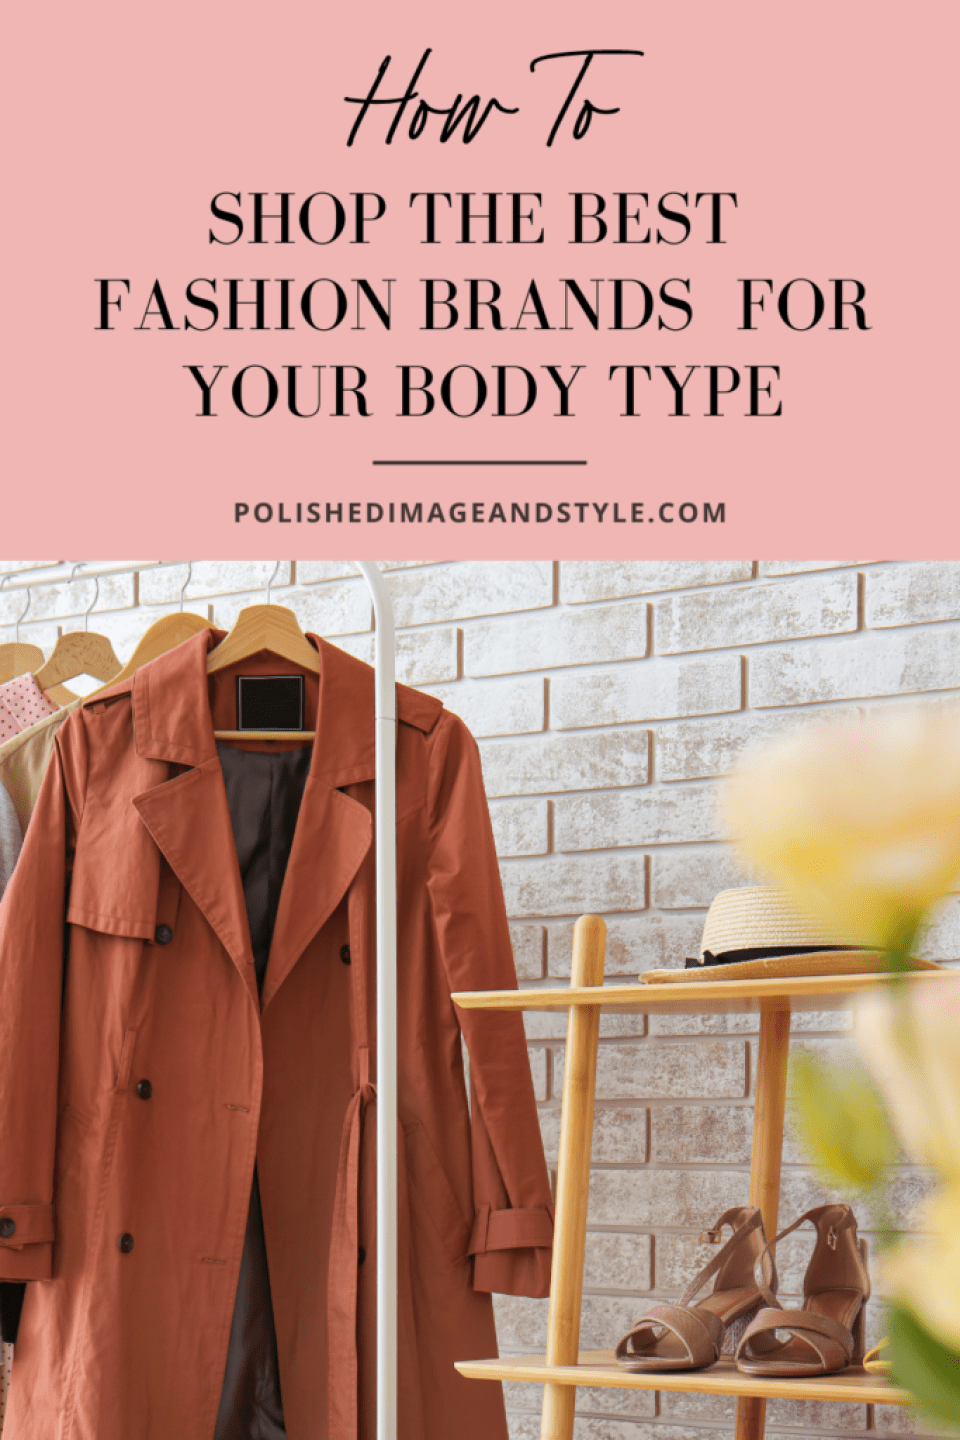 How To Build An Awesome POLISHED Functional Wardrobe For Your LIFE!